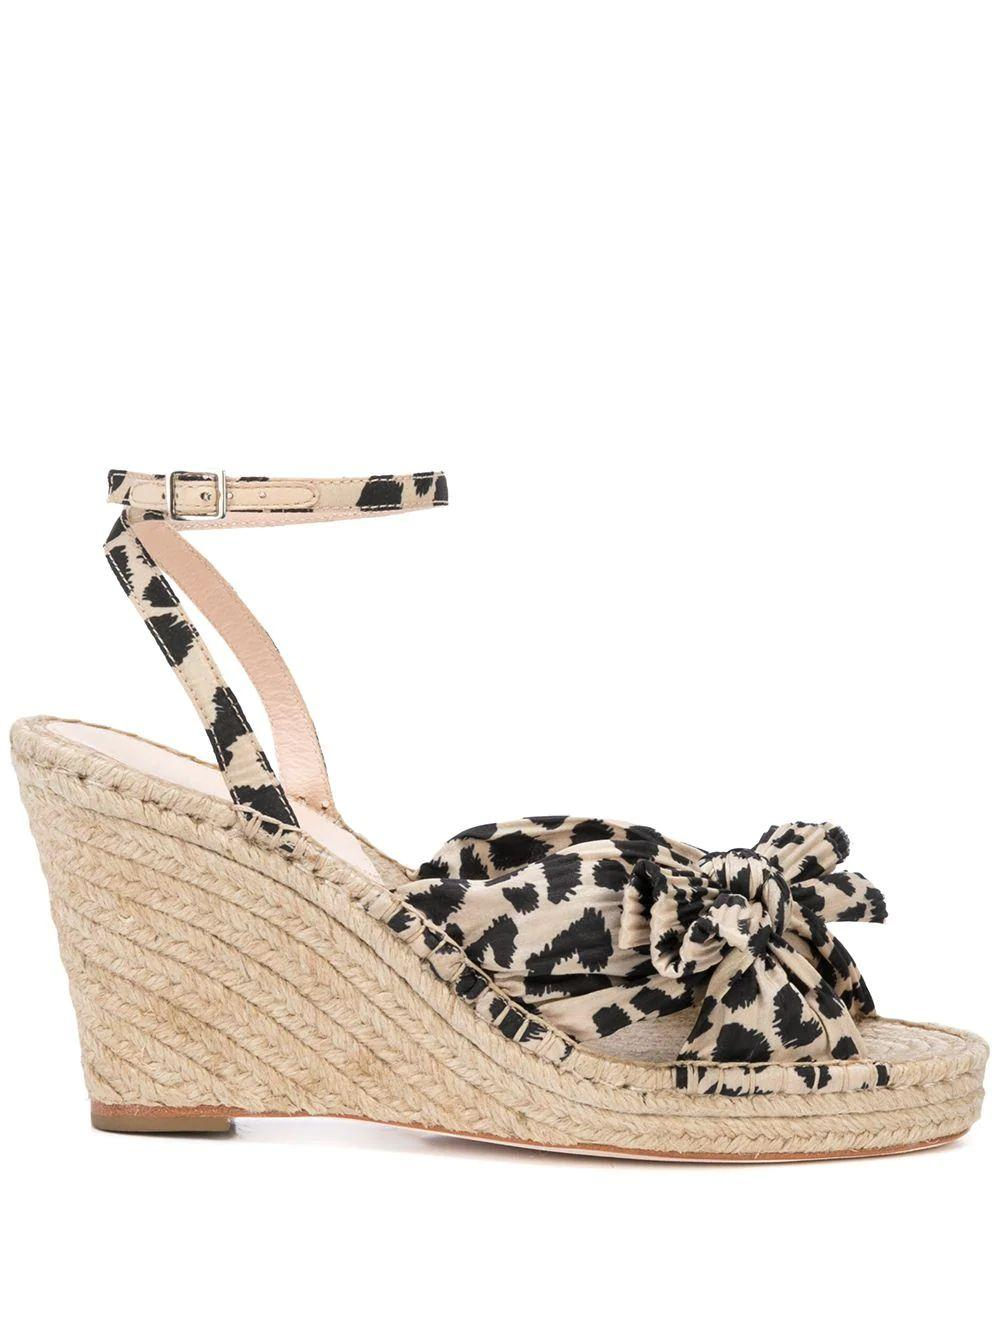 Pleated Knot Espadrille Wedge With Ankles Item # CHARLEY-PLFA